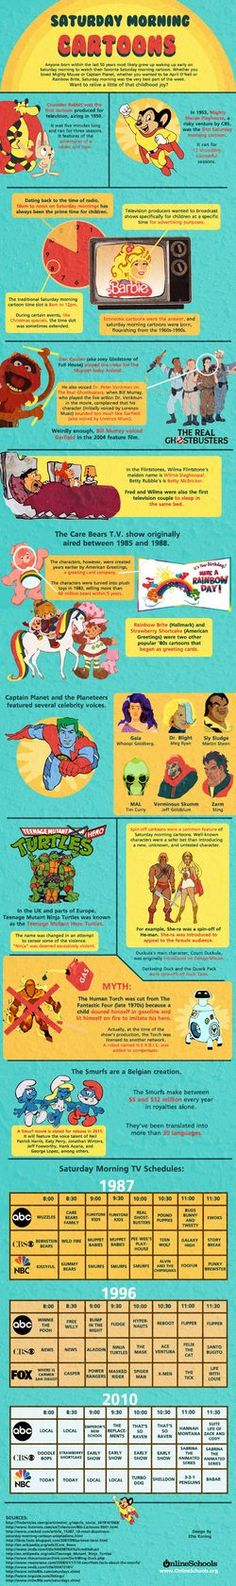 They need to bring back old school Saturday Morning Cartoons